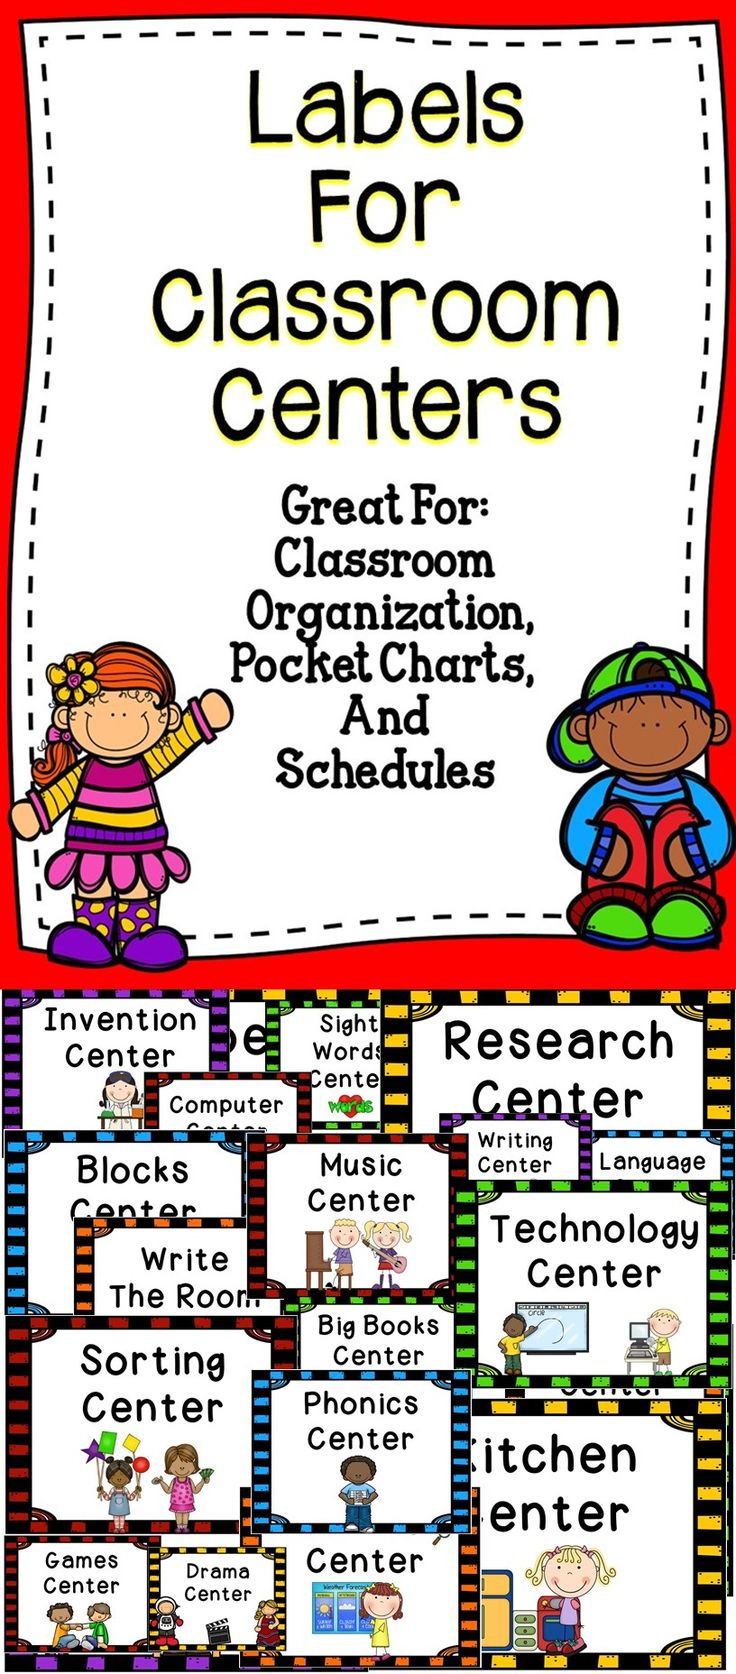 Classroom Labeling Ideas ~ Best images about teaching ideas on pinterest